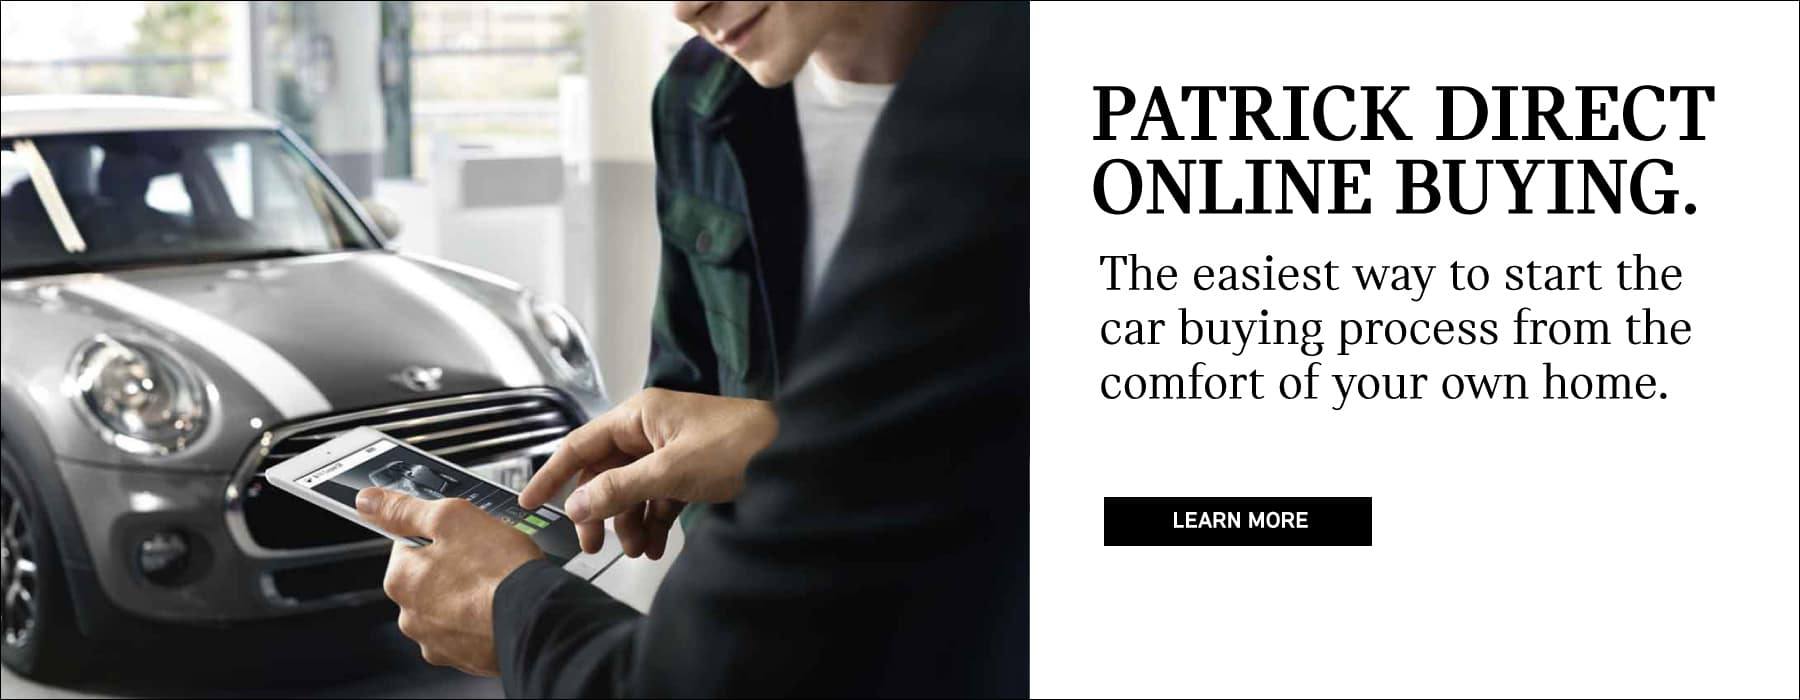 patrick direct online buying. the easiest way ot start the car buying process from the comfort of your own home.